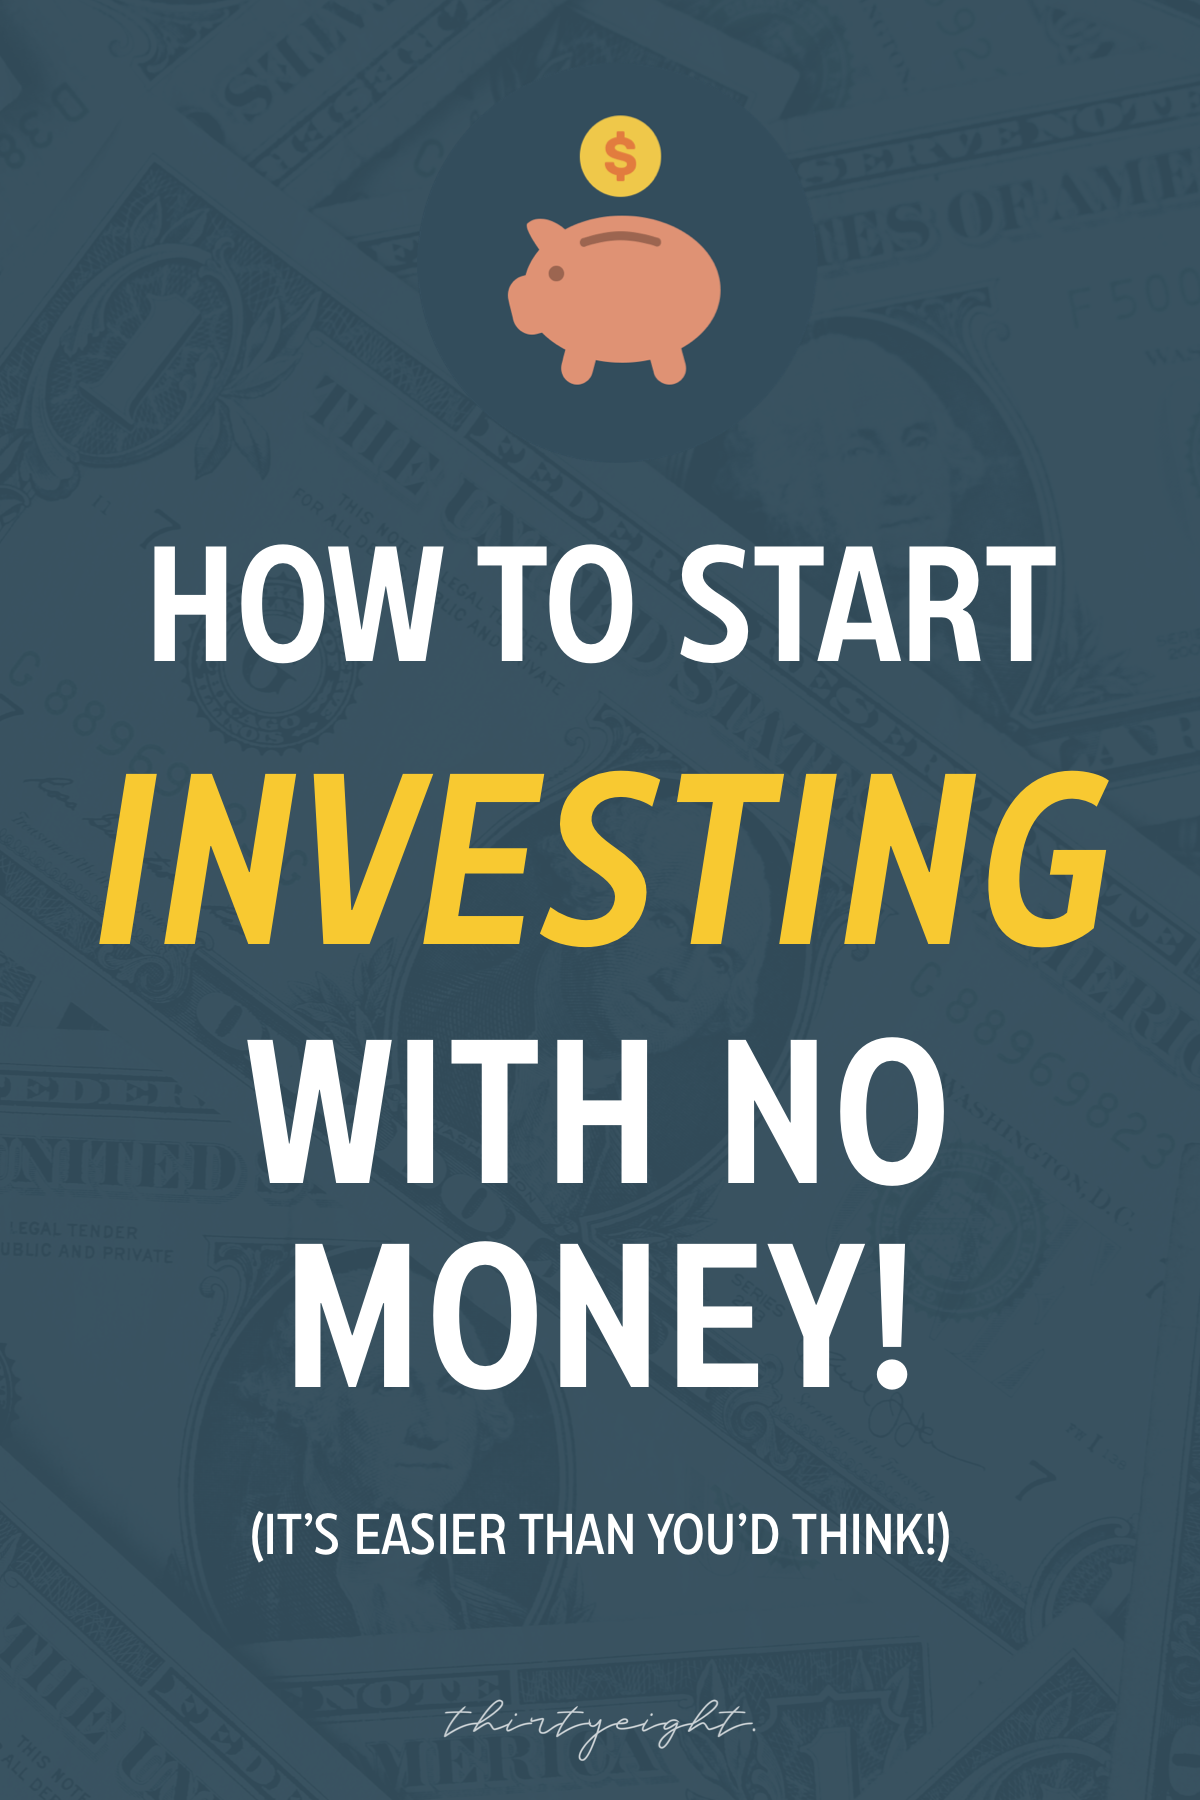 How To Start Investing in the Stock Market Investing